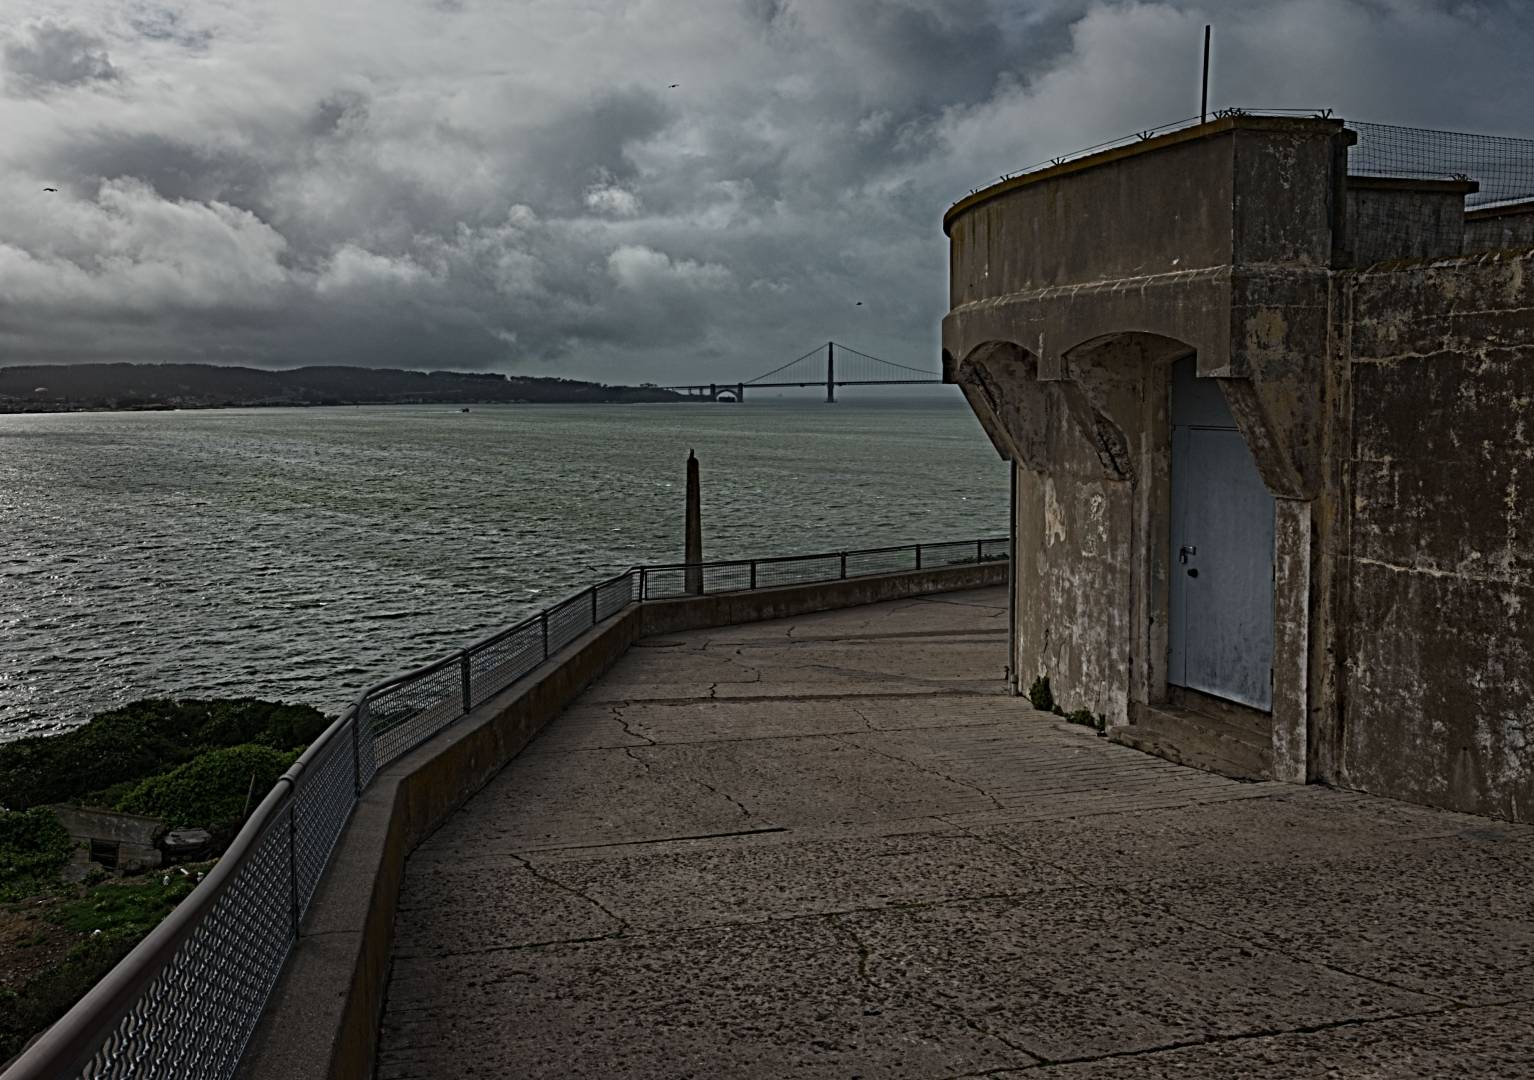 Alcatraz Ruins looking towards Golden Gate, X-T10 and 16mm